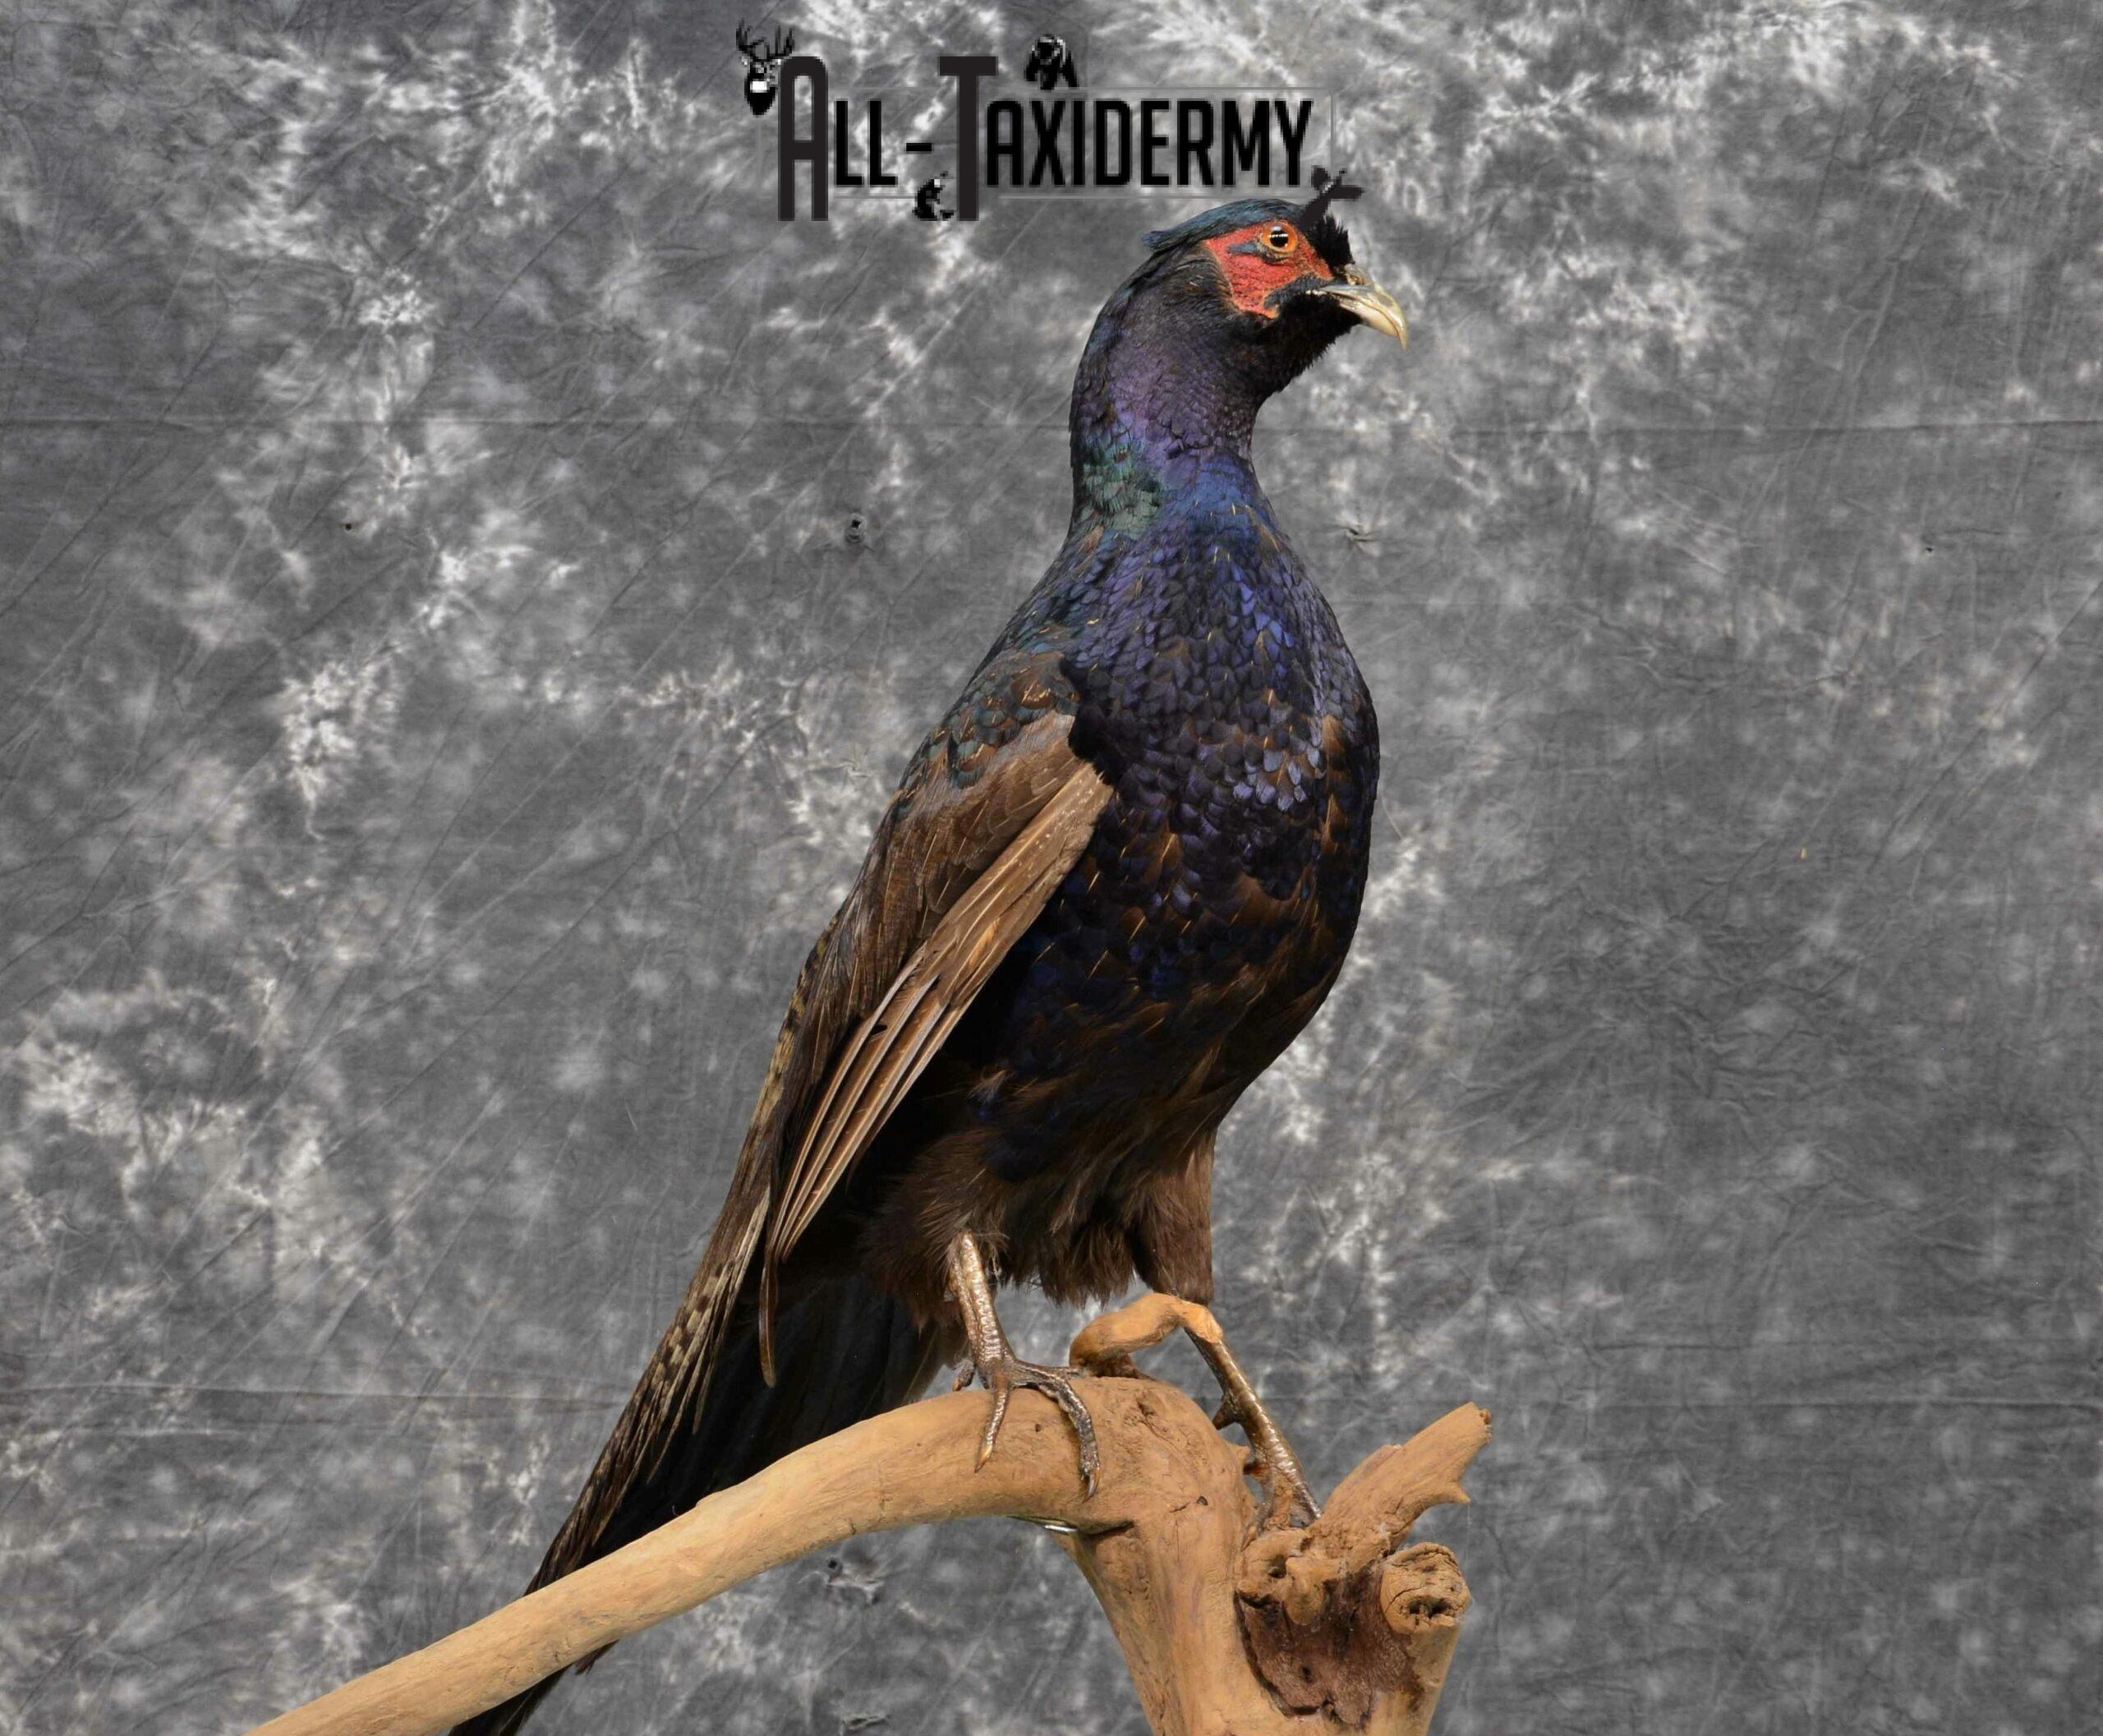 Black Pheasant Taxidermy Mount for Sale SKU 1111